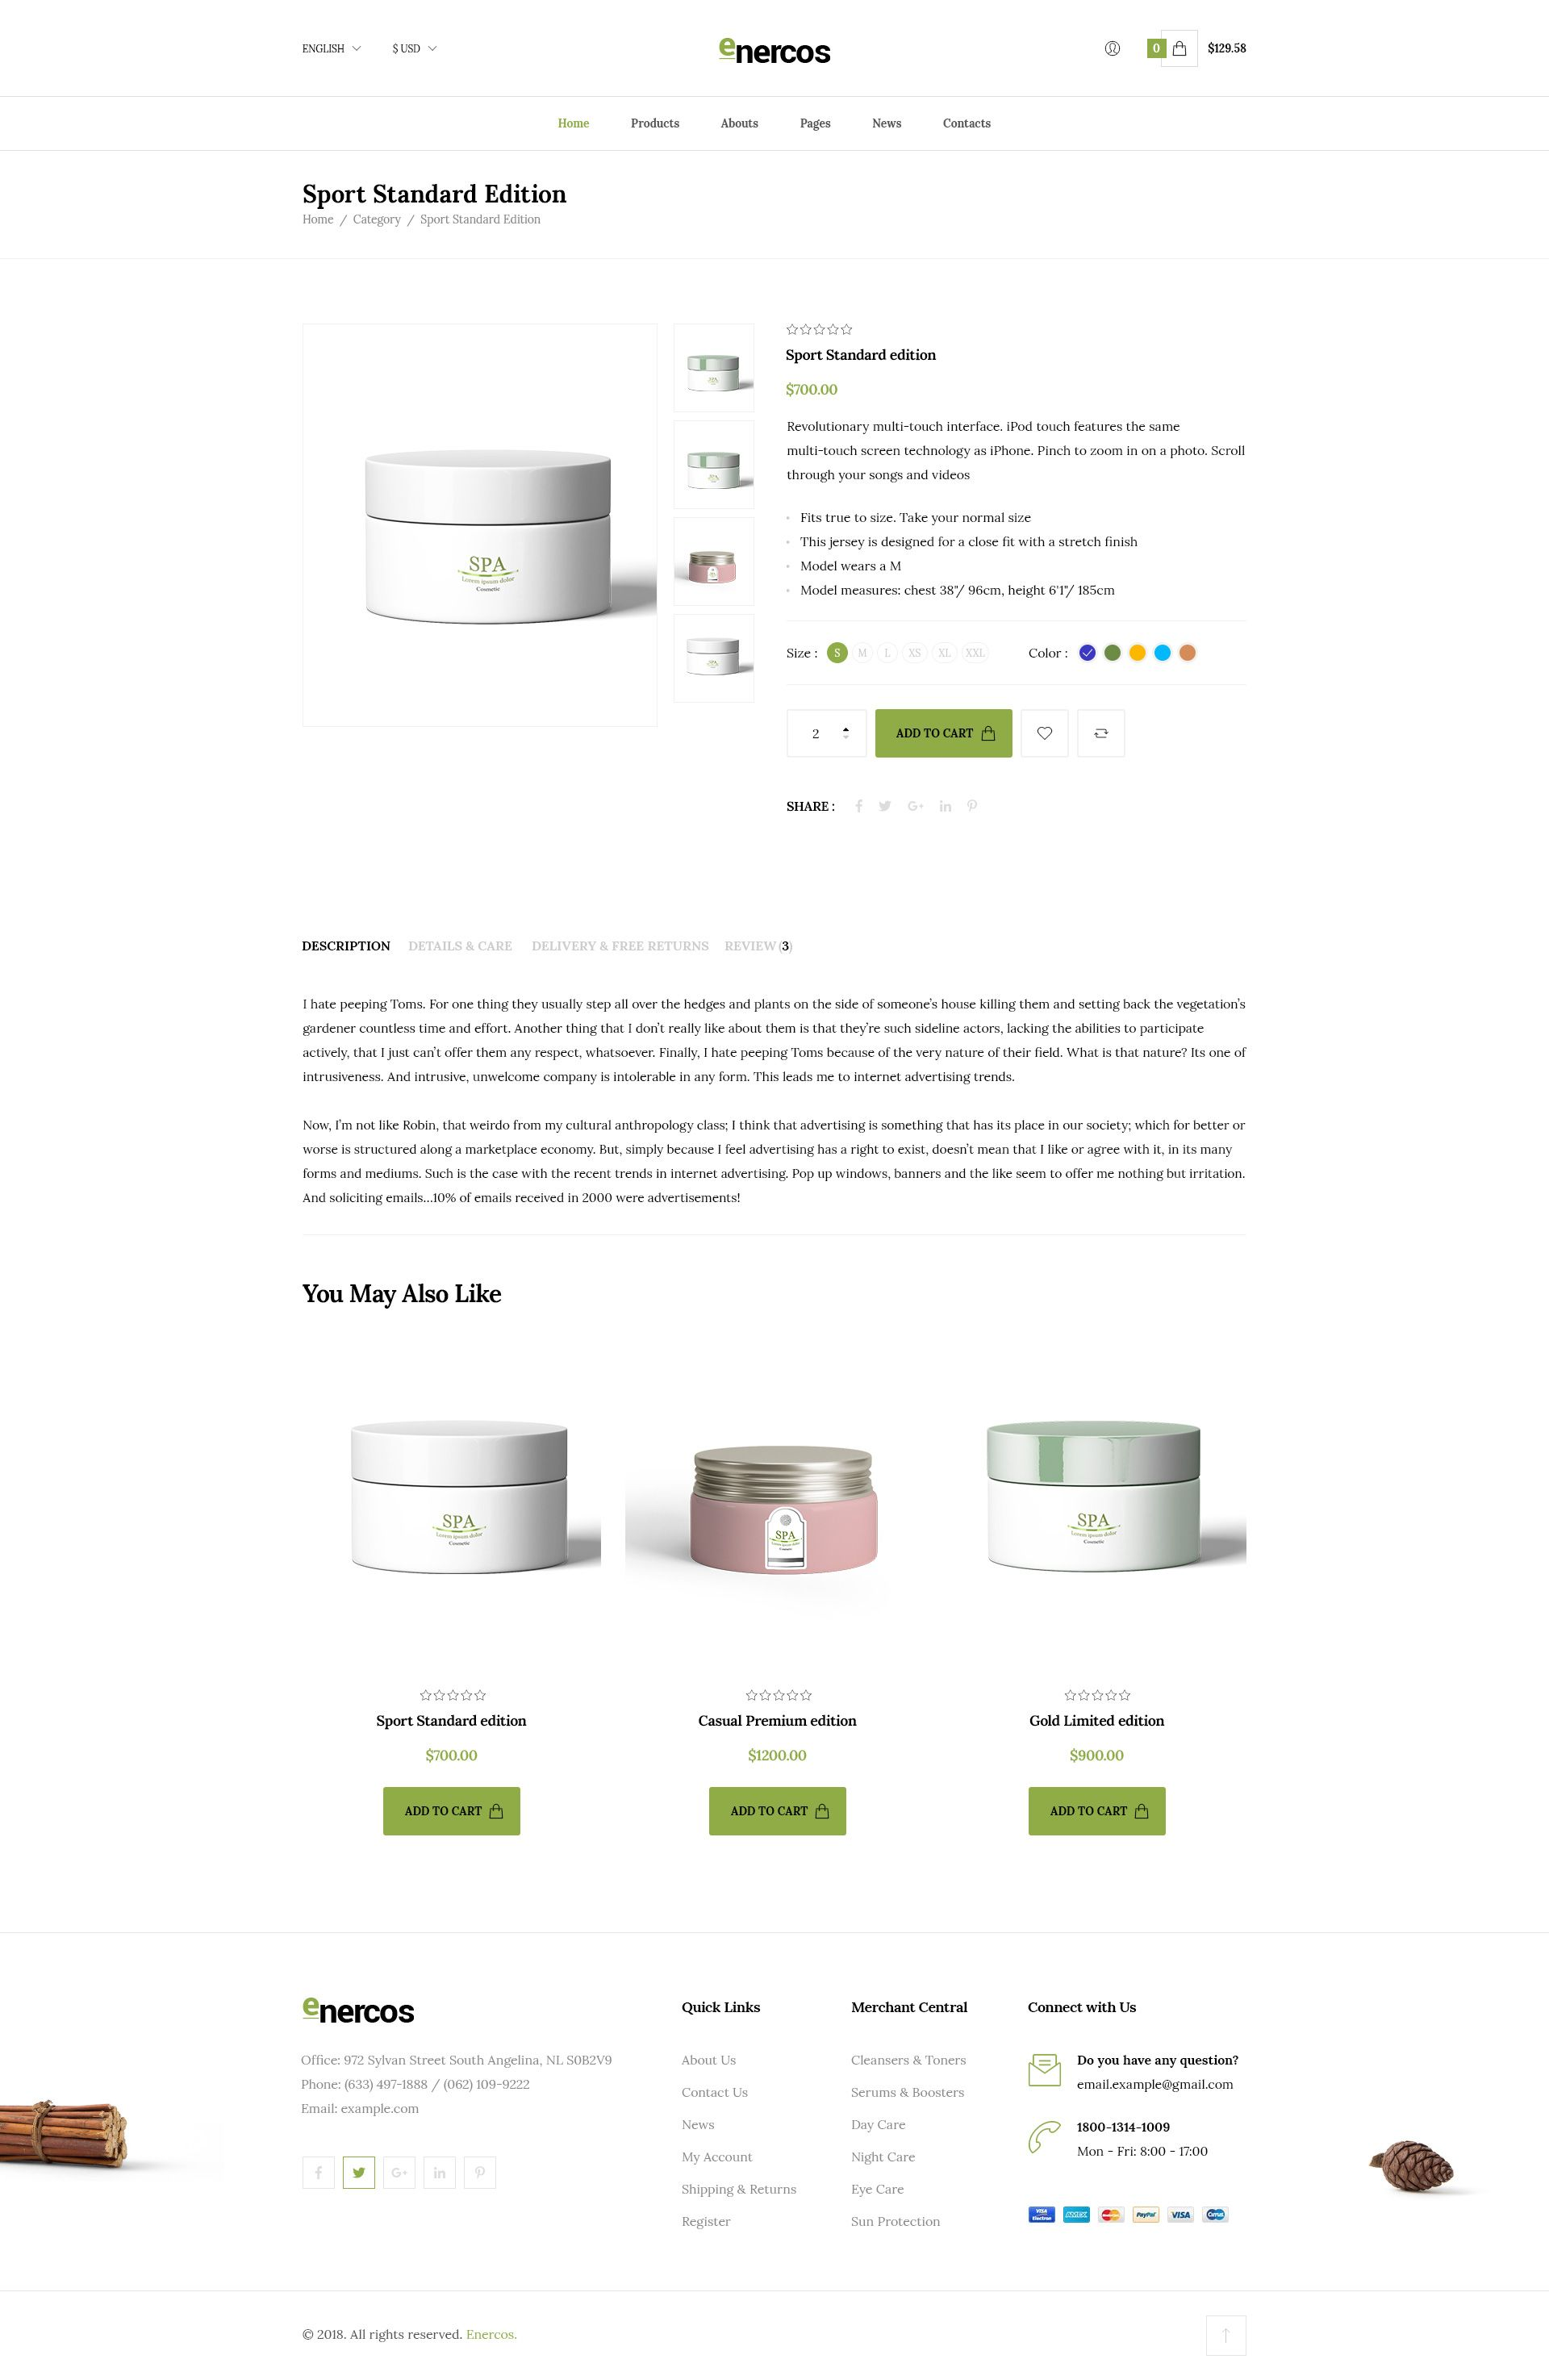 Enercos - Single Product eCommerce Shopify Theme Screenshot 6